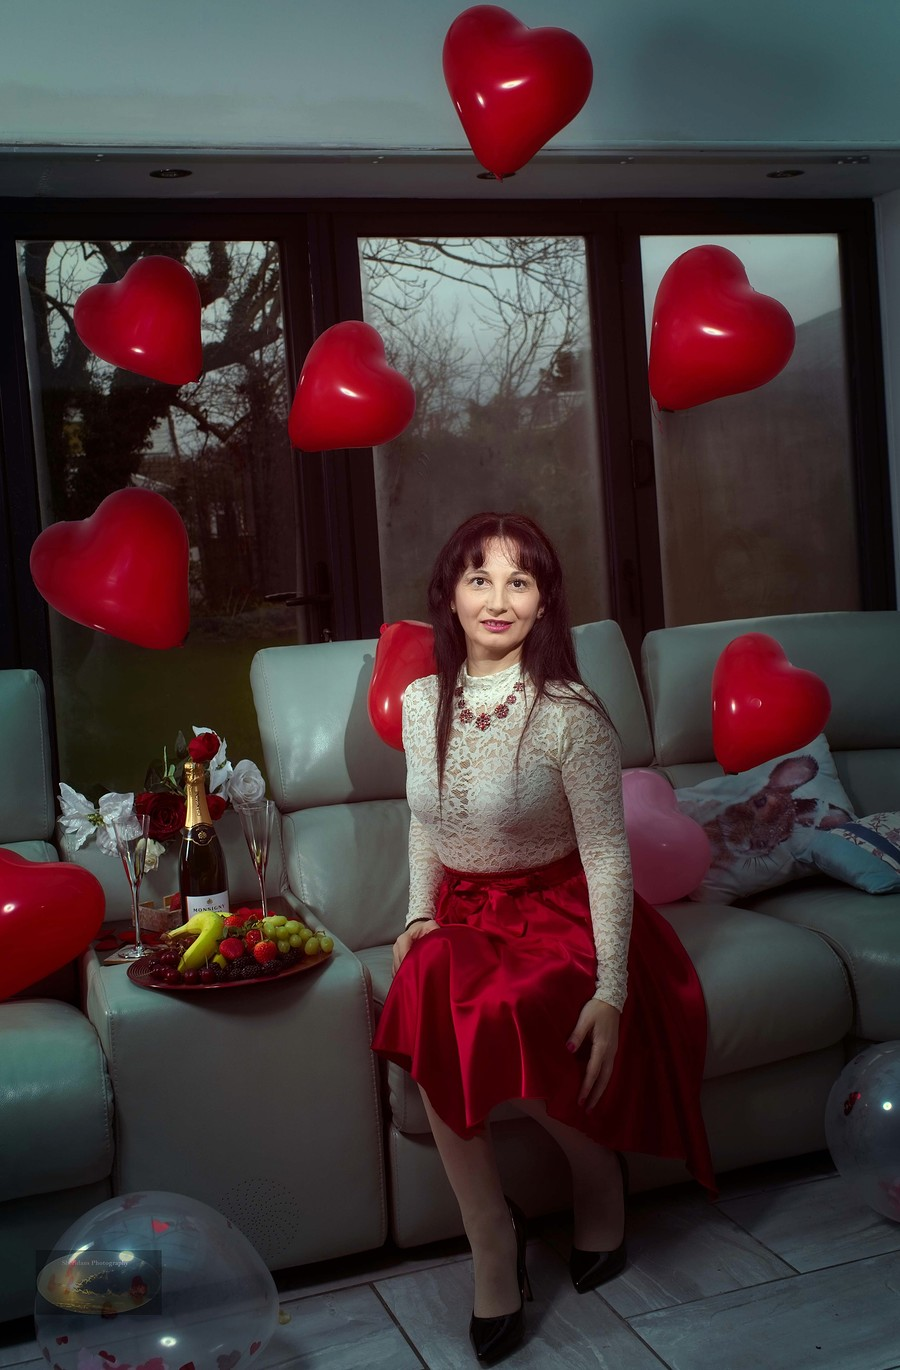 Happy Valentines Day / Photography by Ste, Model clara 1 / Uploaded 13th February 2020 @ 09:00 PM